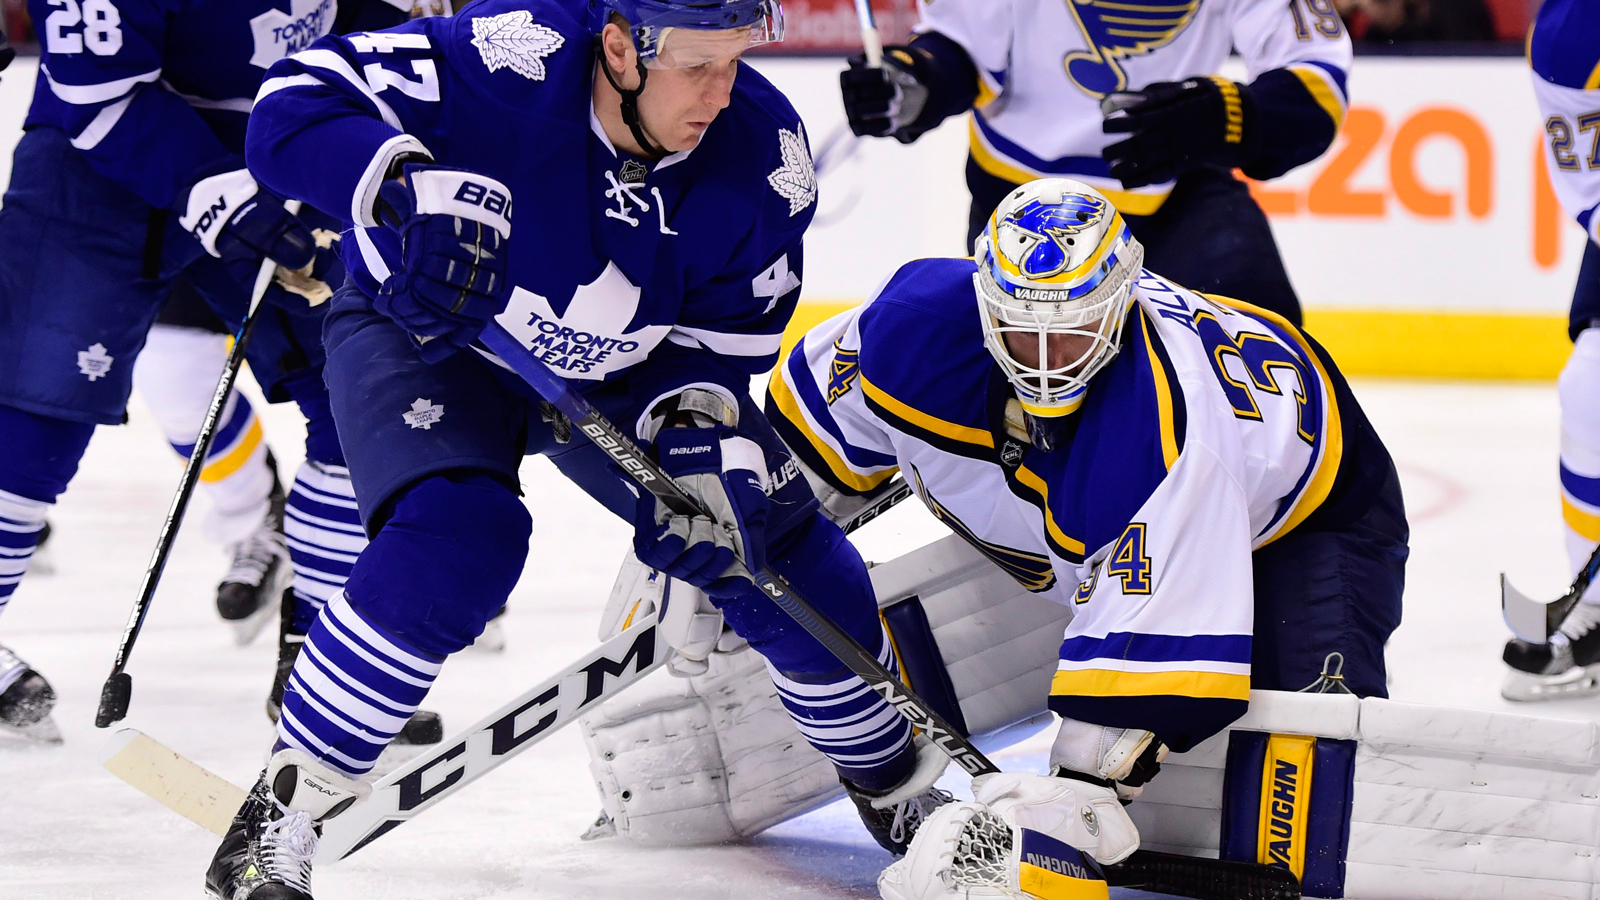 Blues give up three in final period, fall to Maple Leafs 4-1